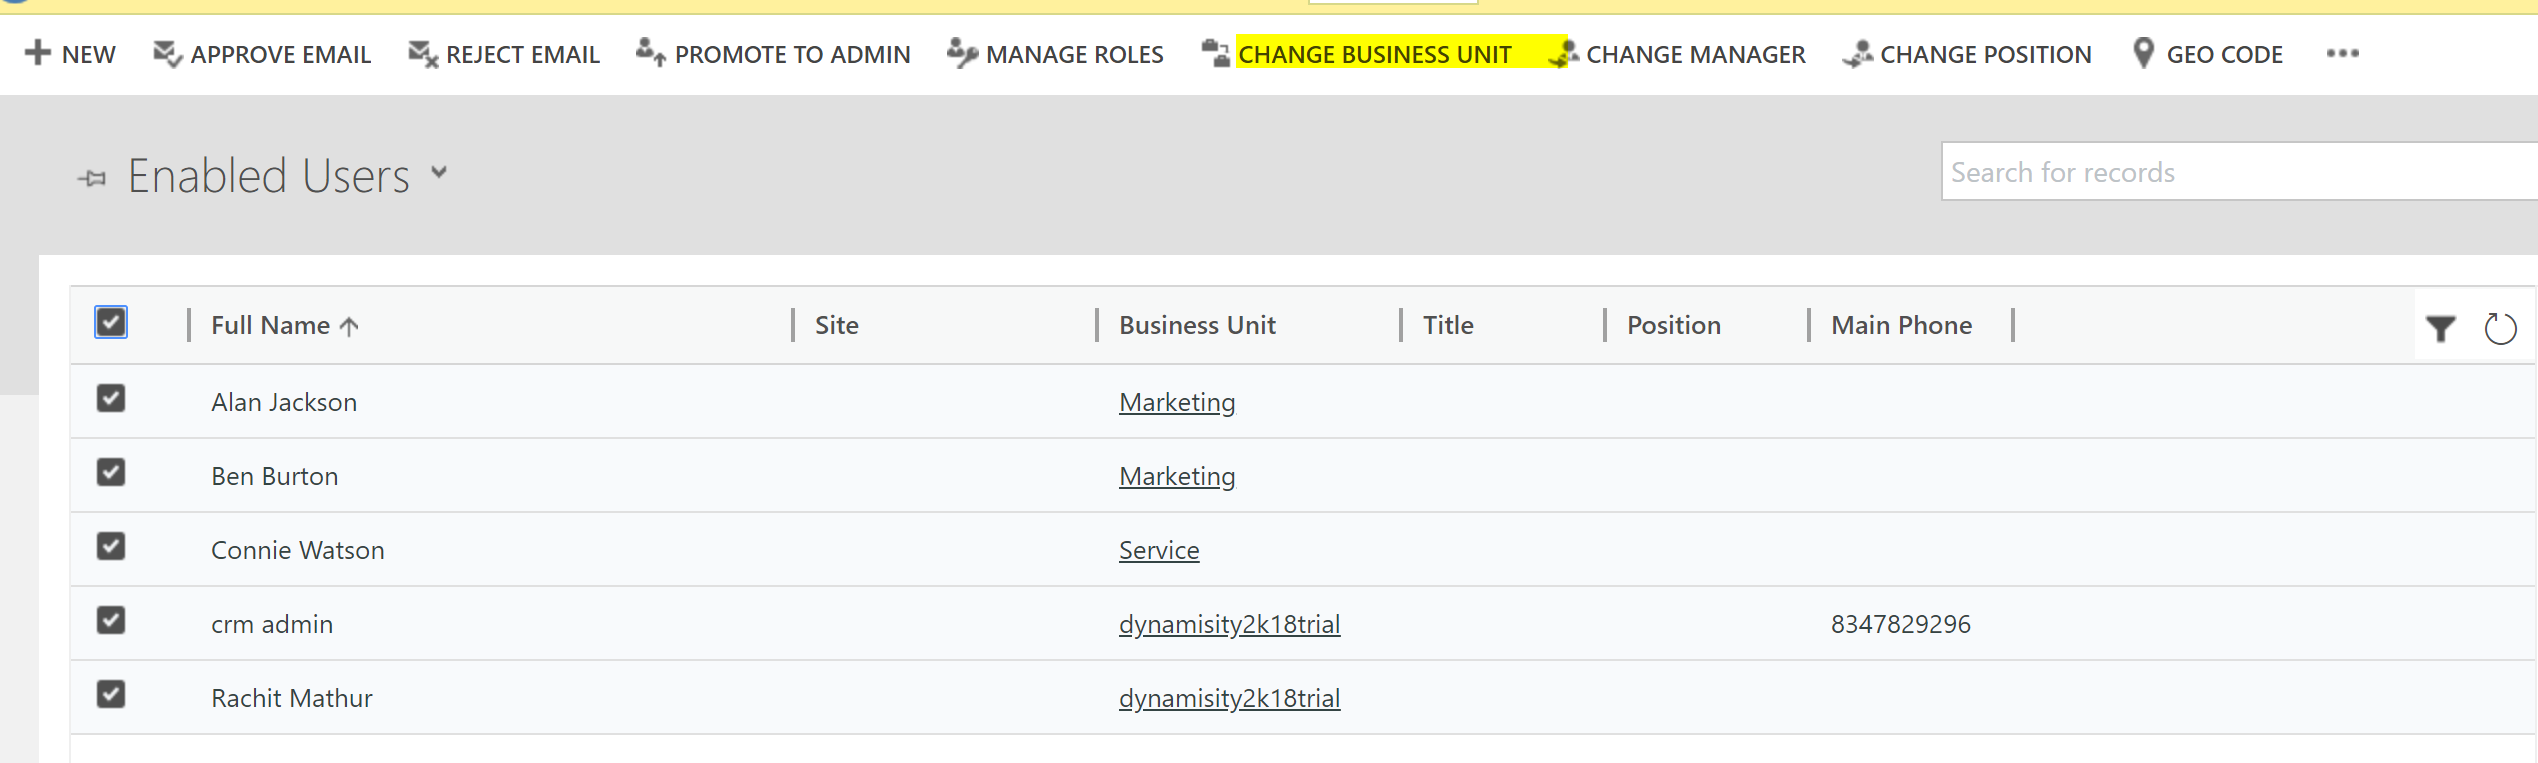 Zero code Solution} Bulk assignment of Business Unit to users on